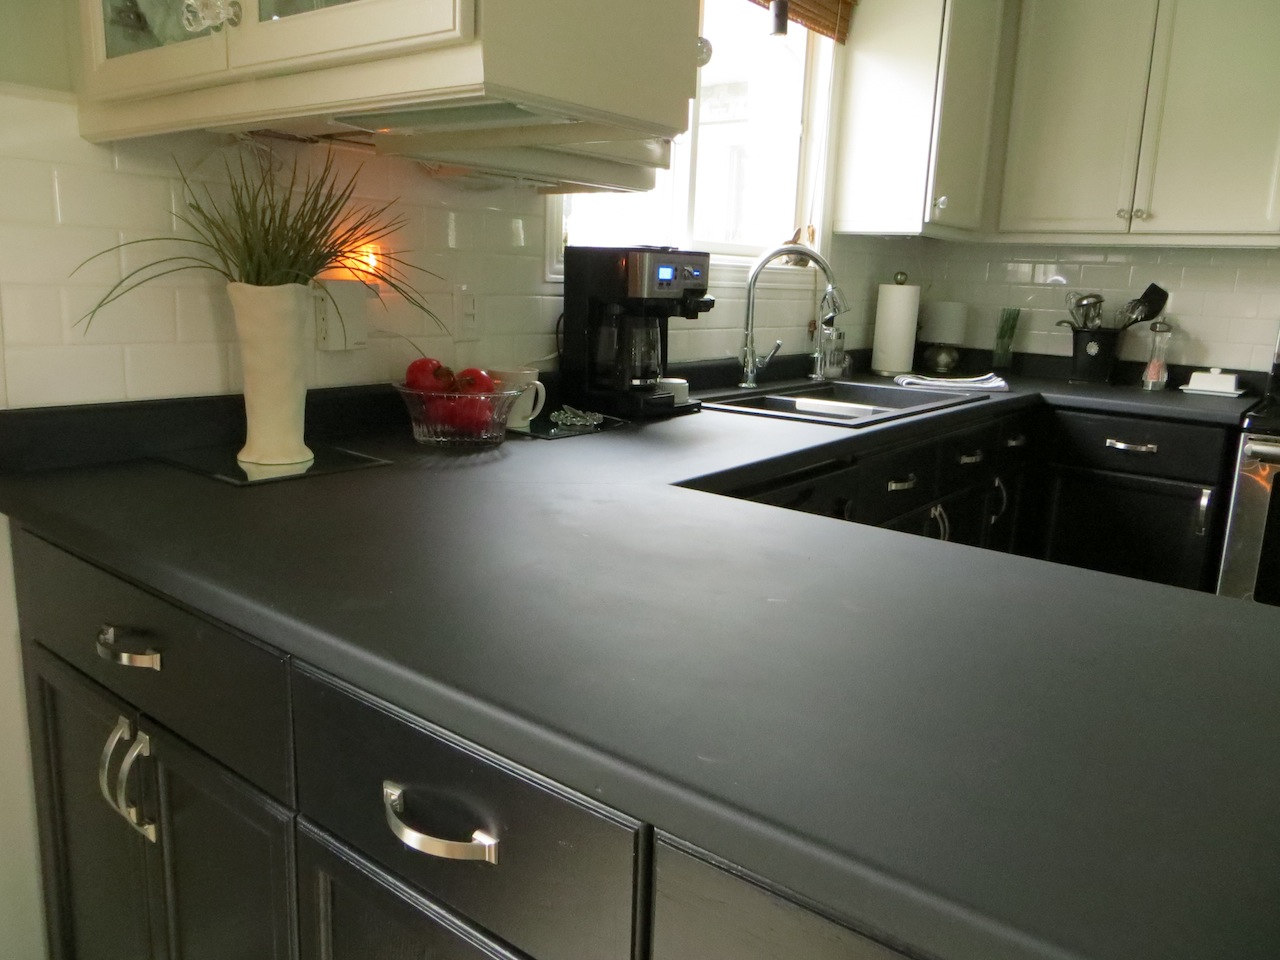 Paint Your Kitchen Countertops With Chalkboard Paint This Peaceful Home